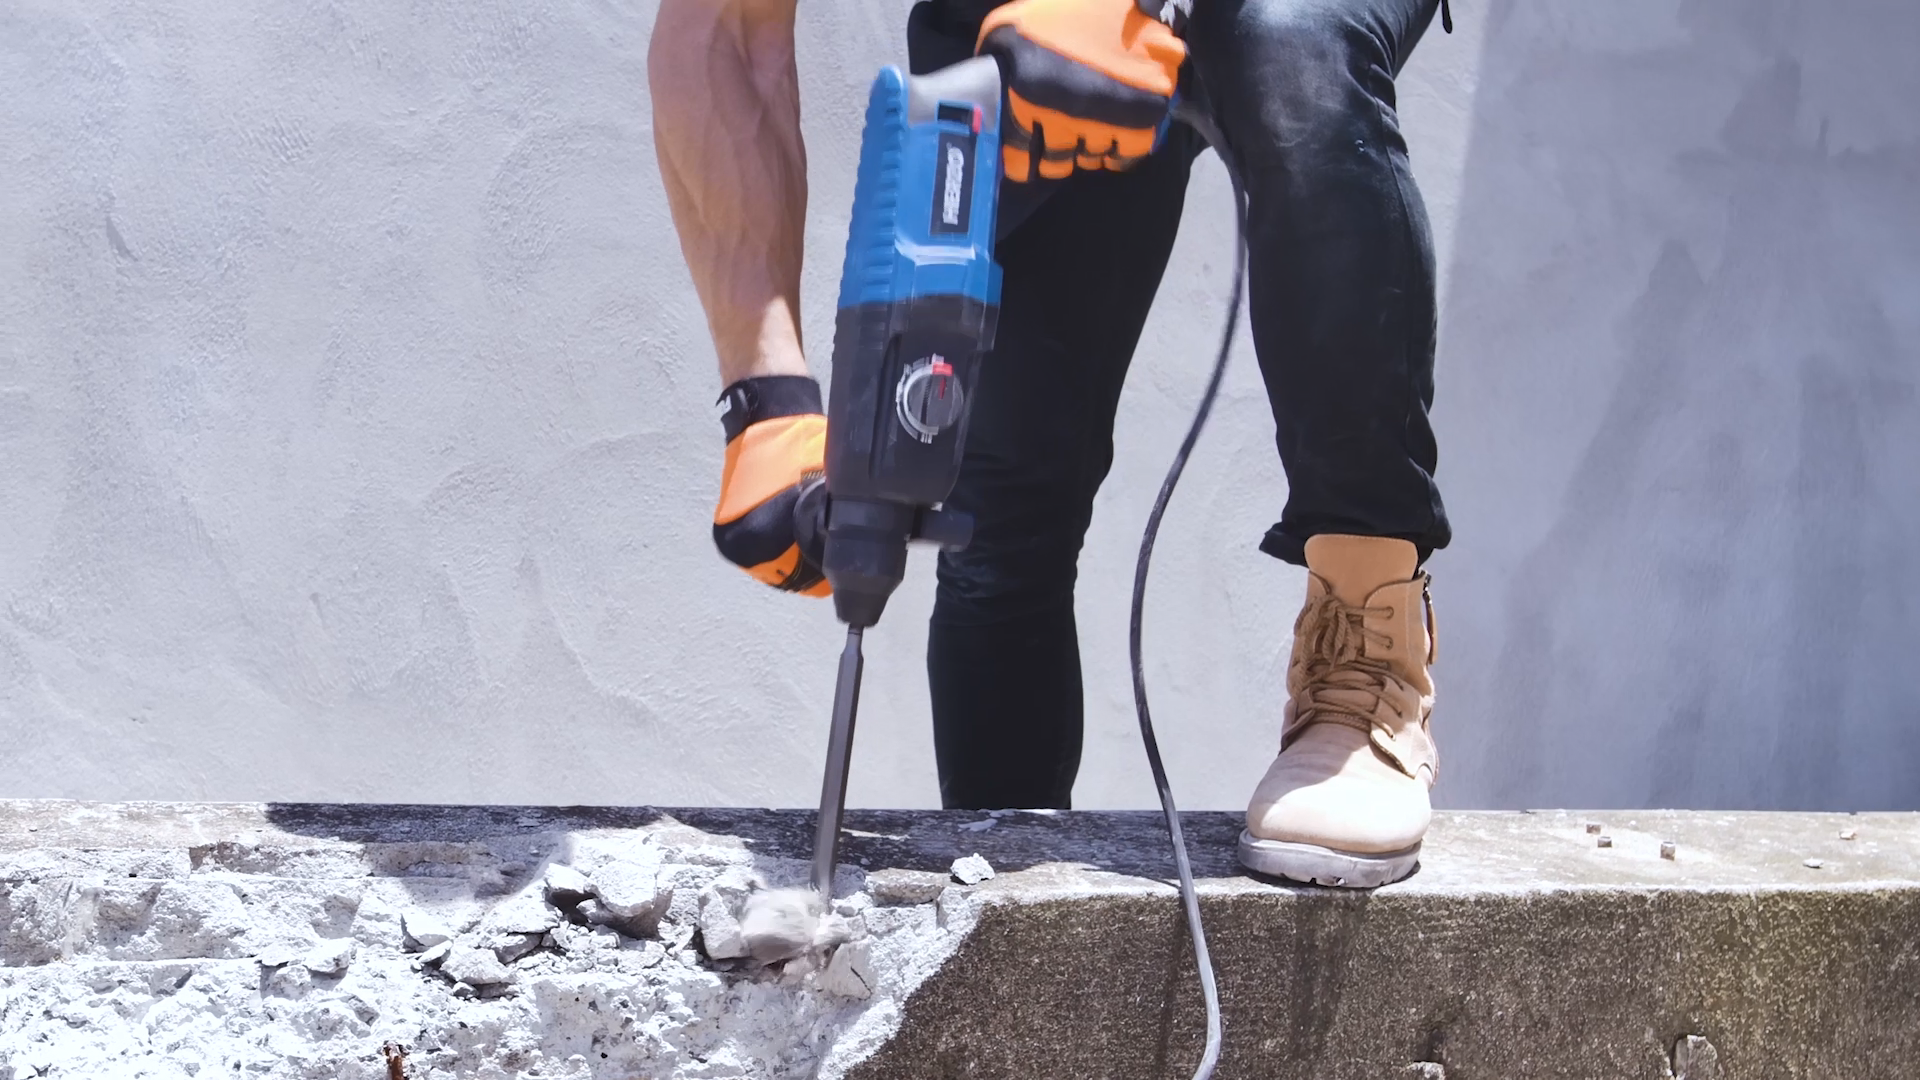 G-max BMC Package SDS-PLUS 900W 26MM Electric Rotary Hammer drill